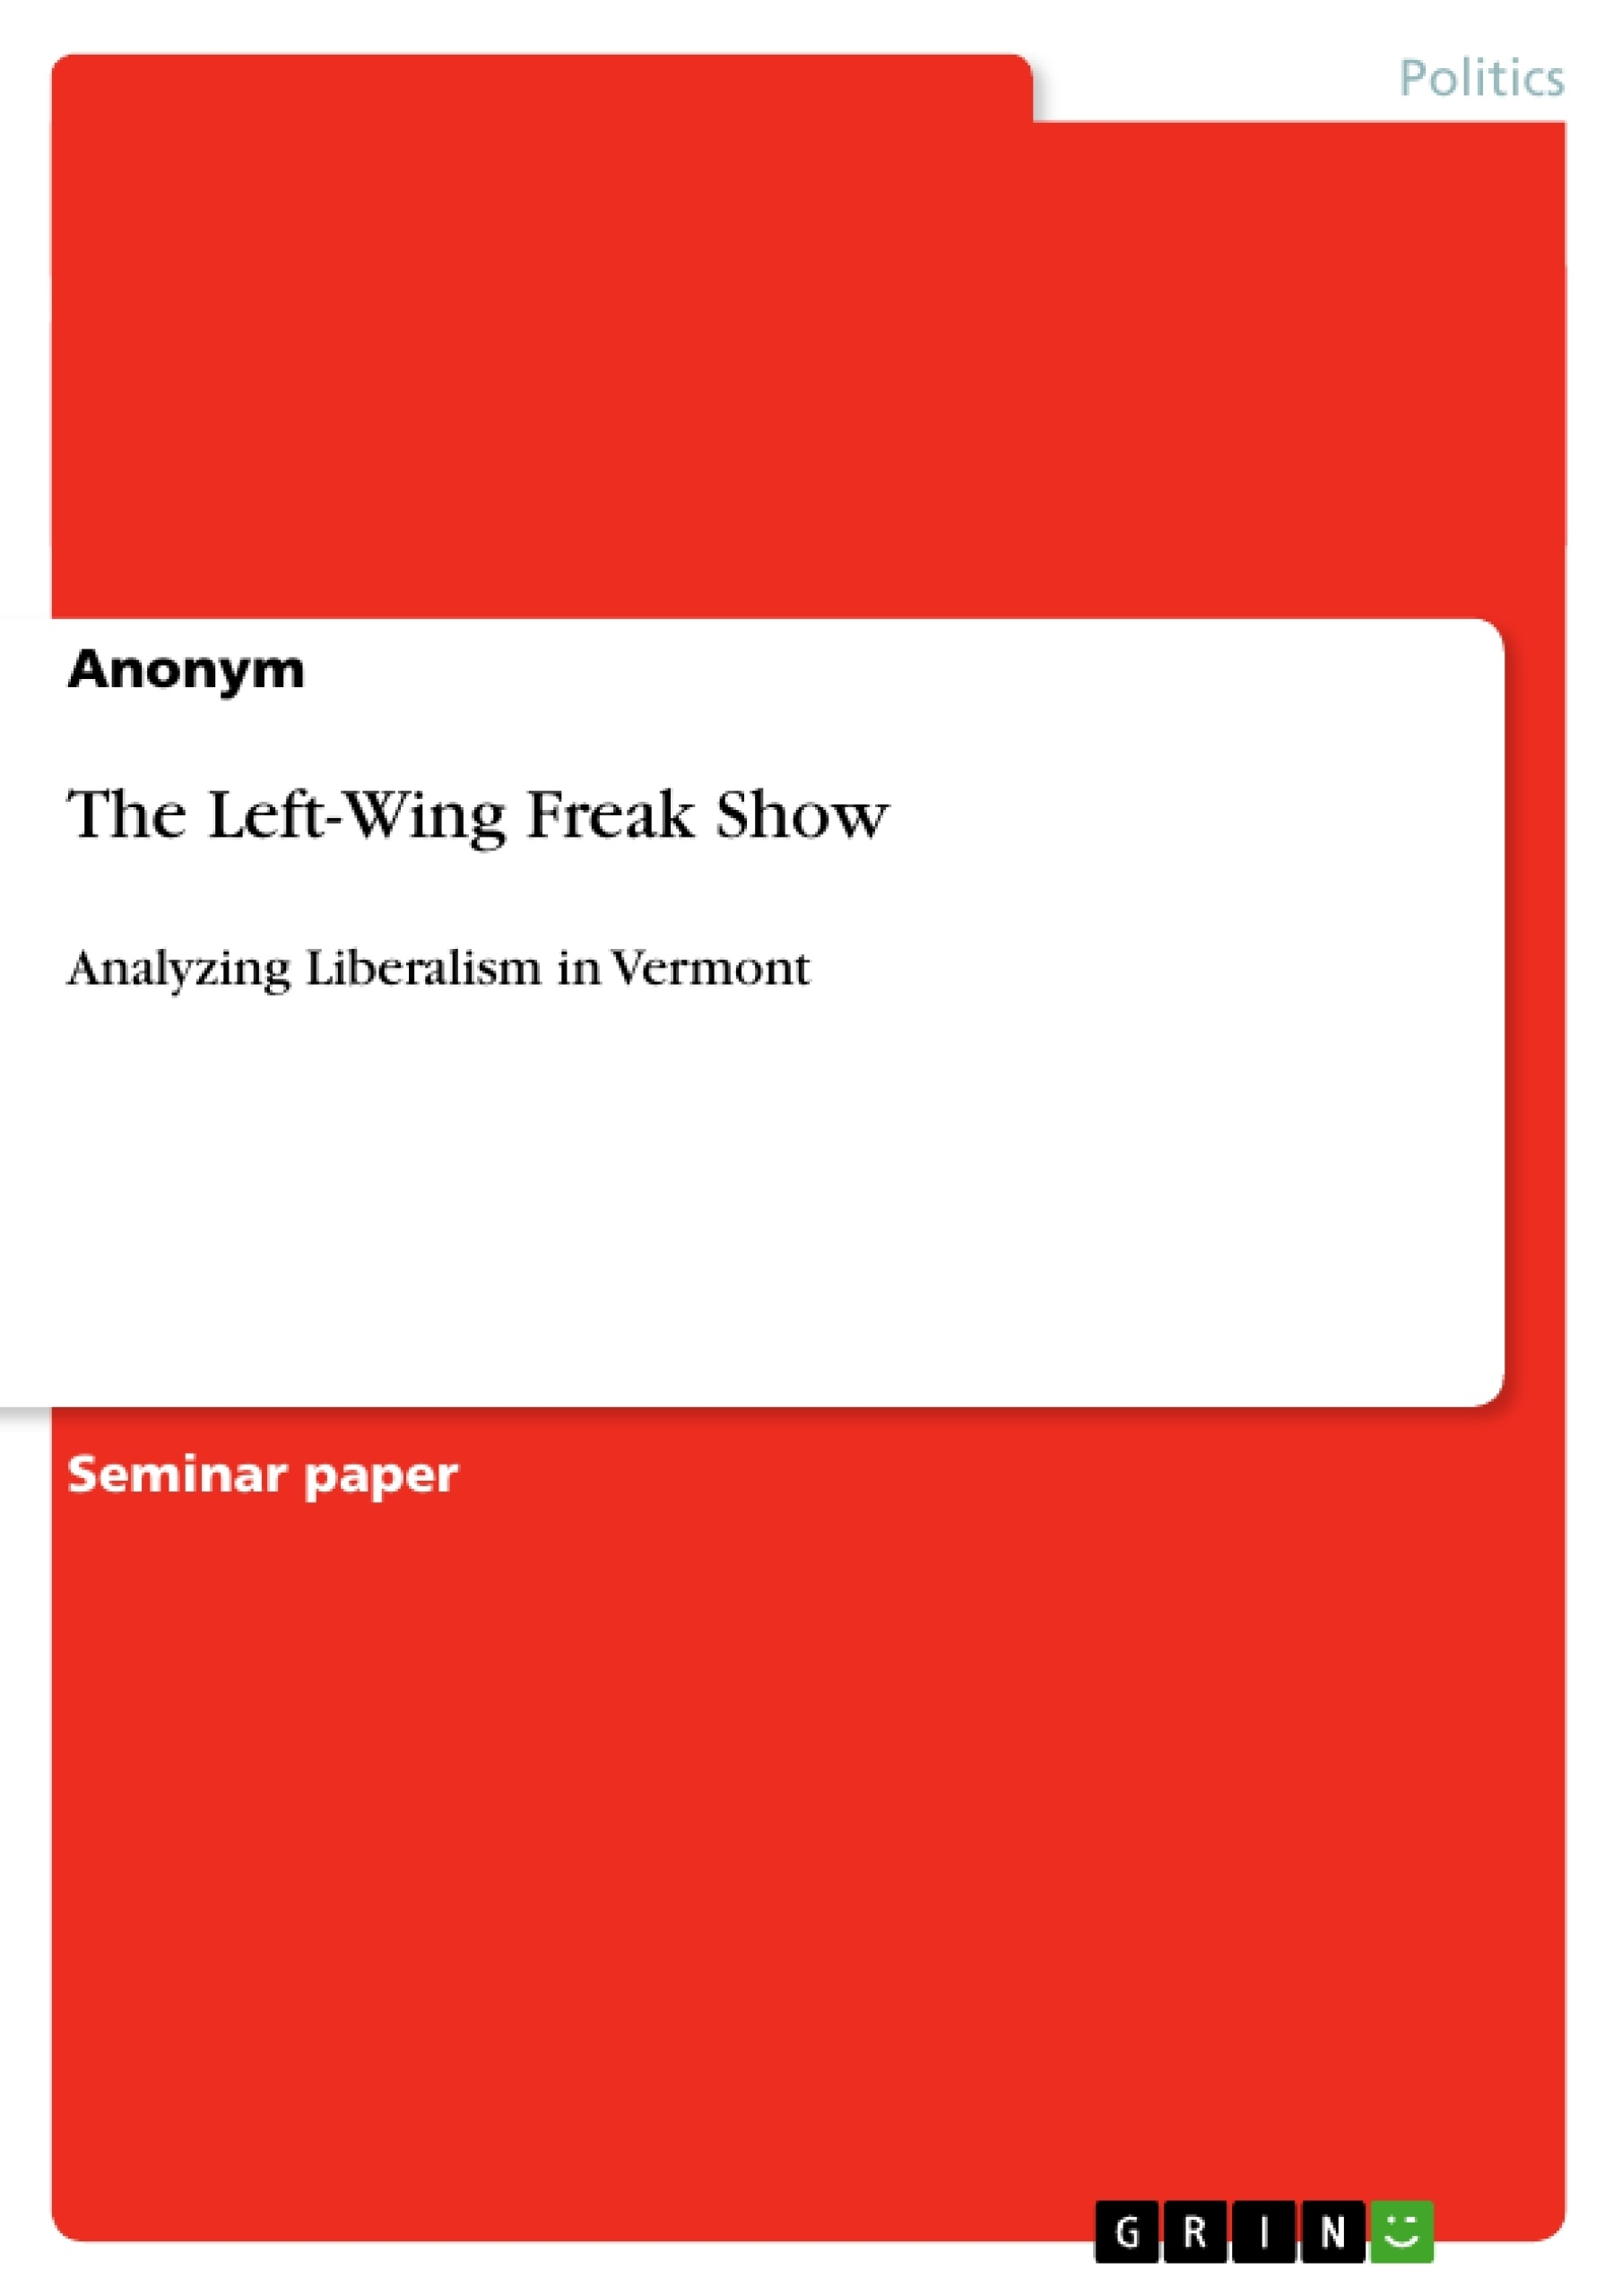 Title: The Left-Wing Freak Show